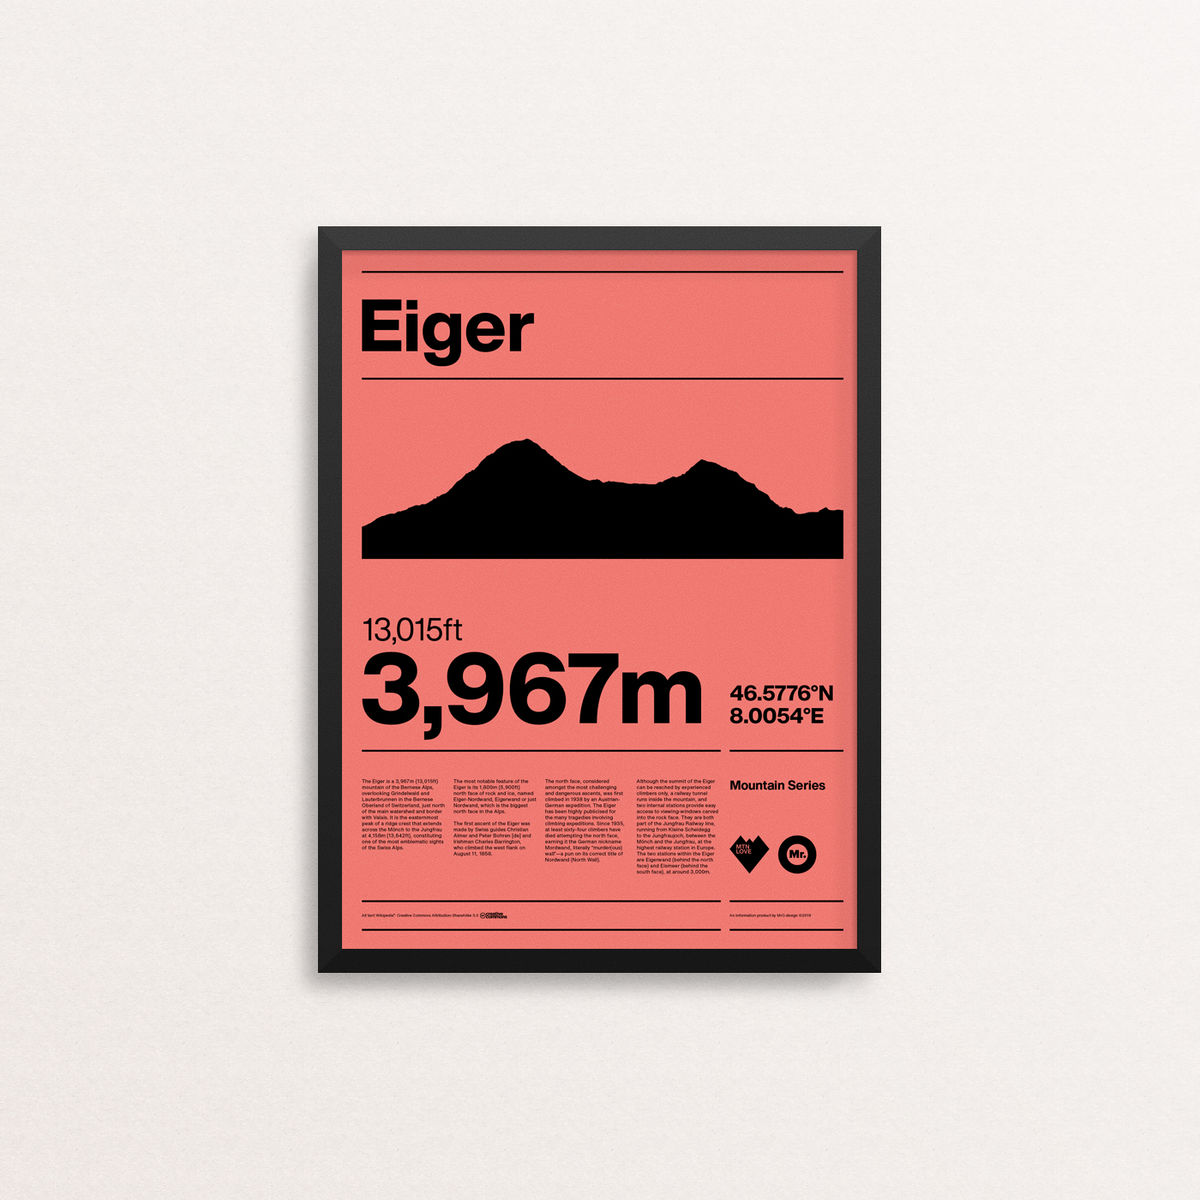 MTN Love - Eiger - product image